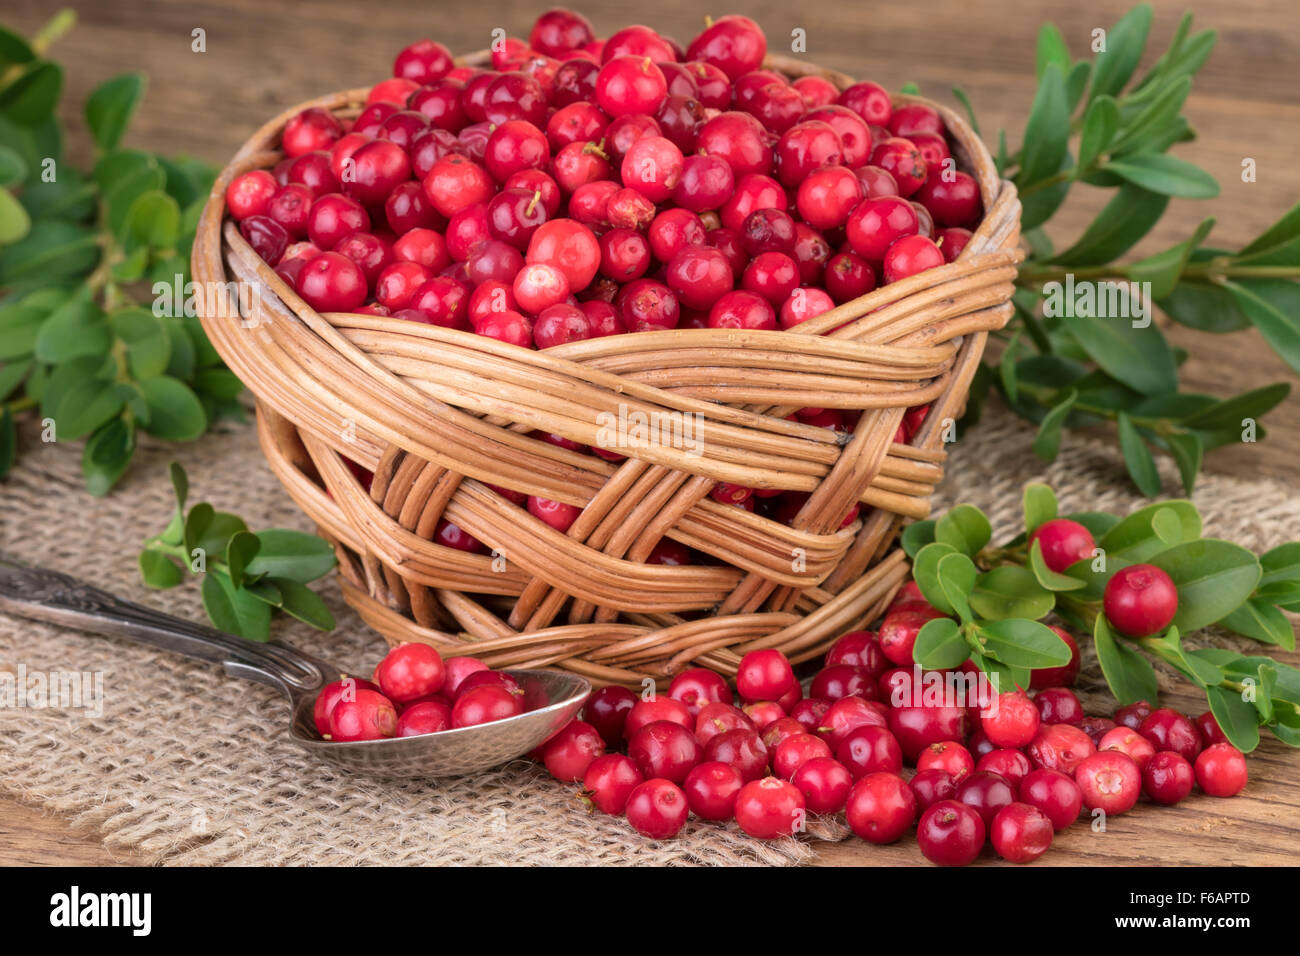 Basket of Cranberry Lingonberry - Stock Image